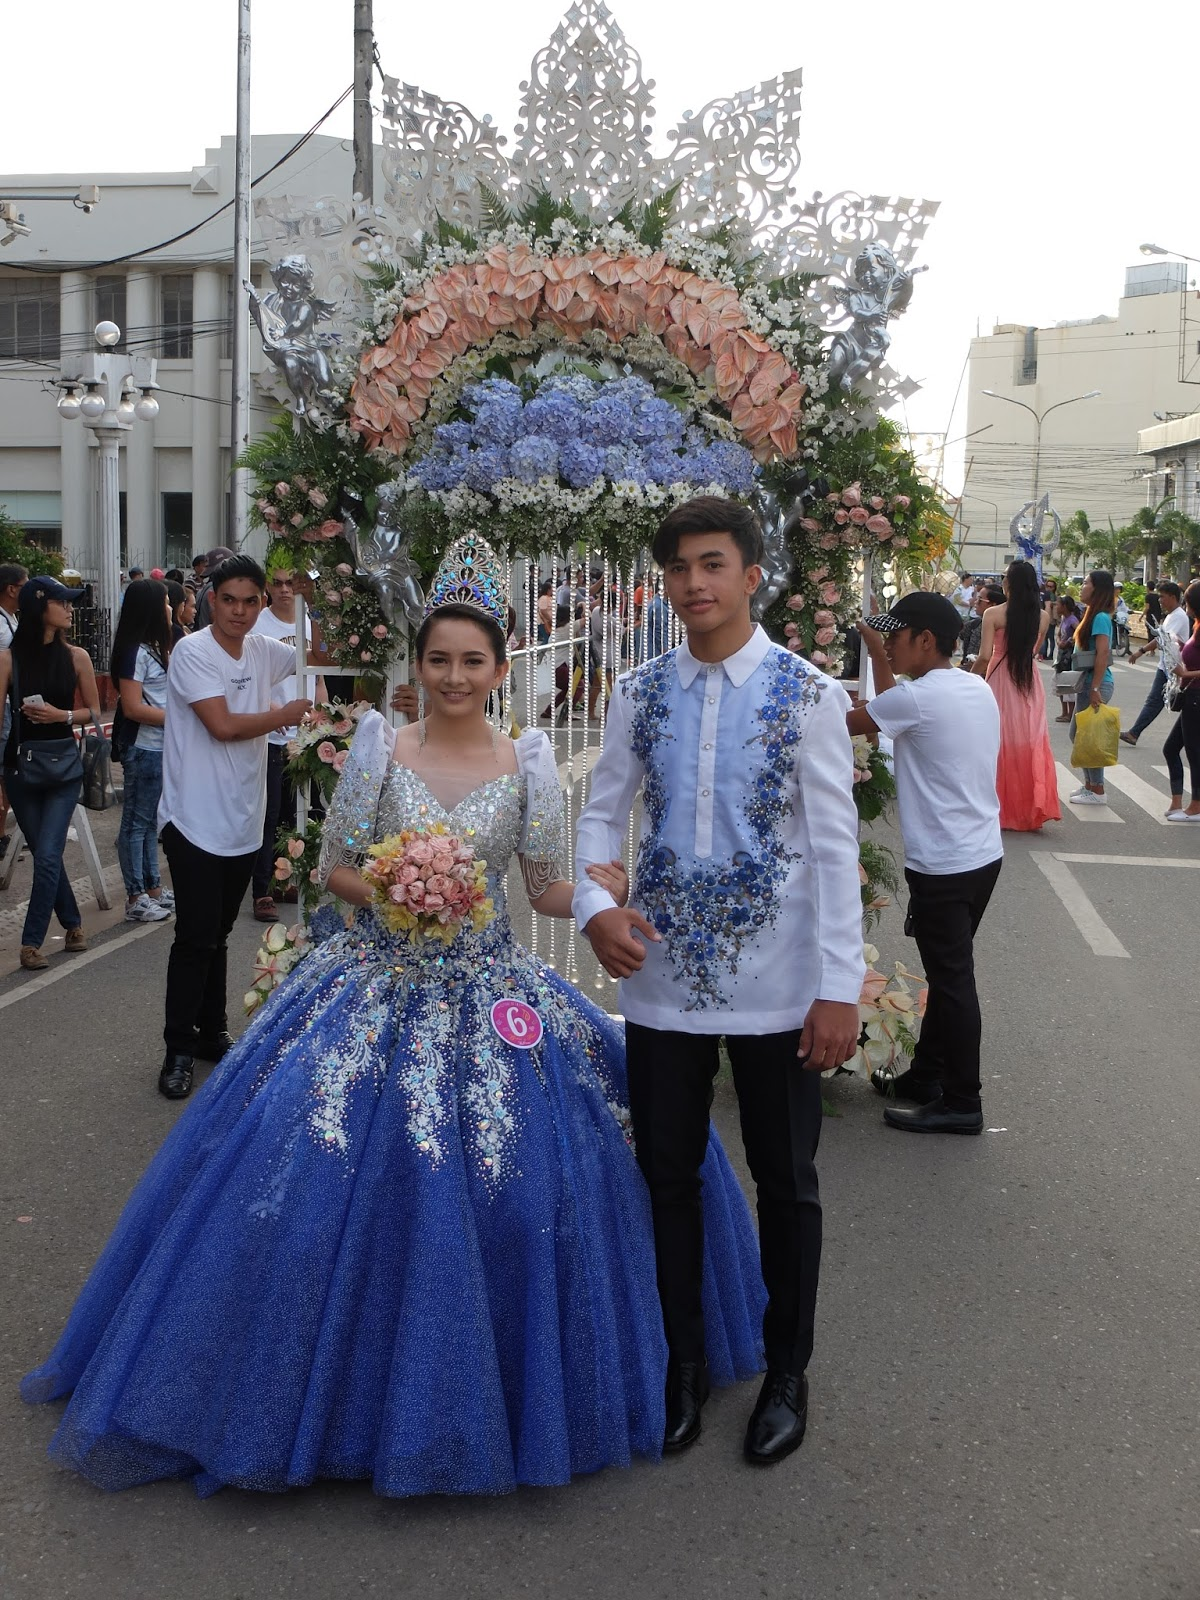 Old Fashioned Filipiniana Ball Gown Gallery - Wedding and flowers ...